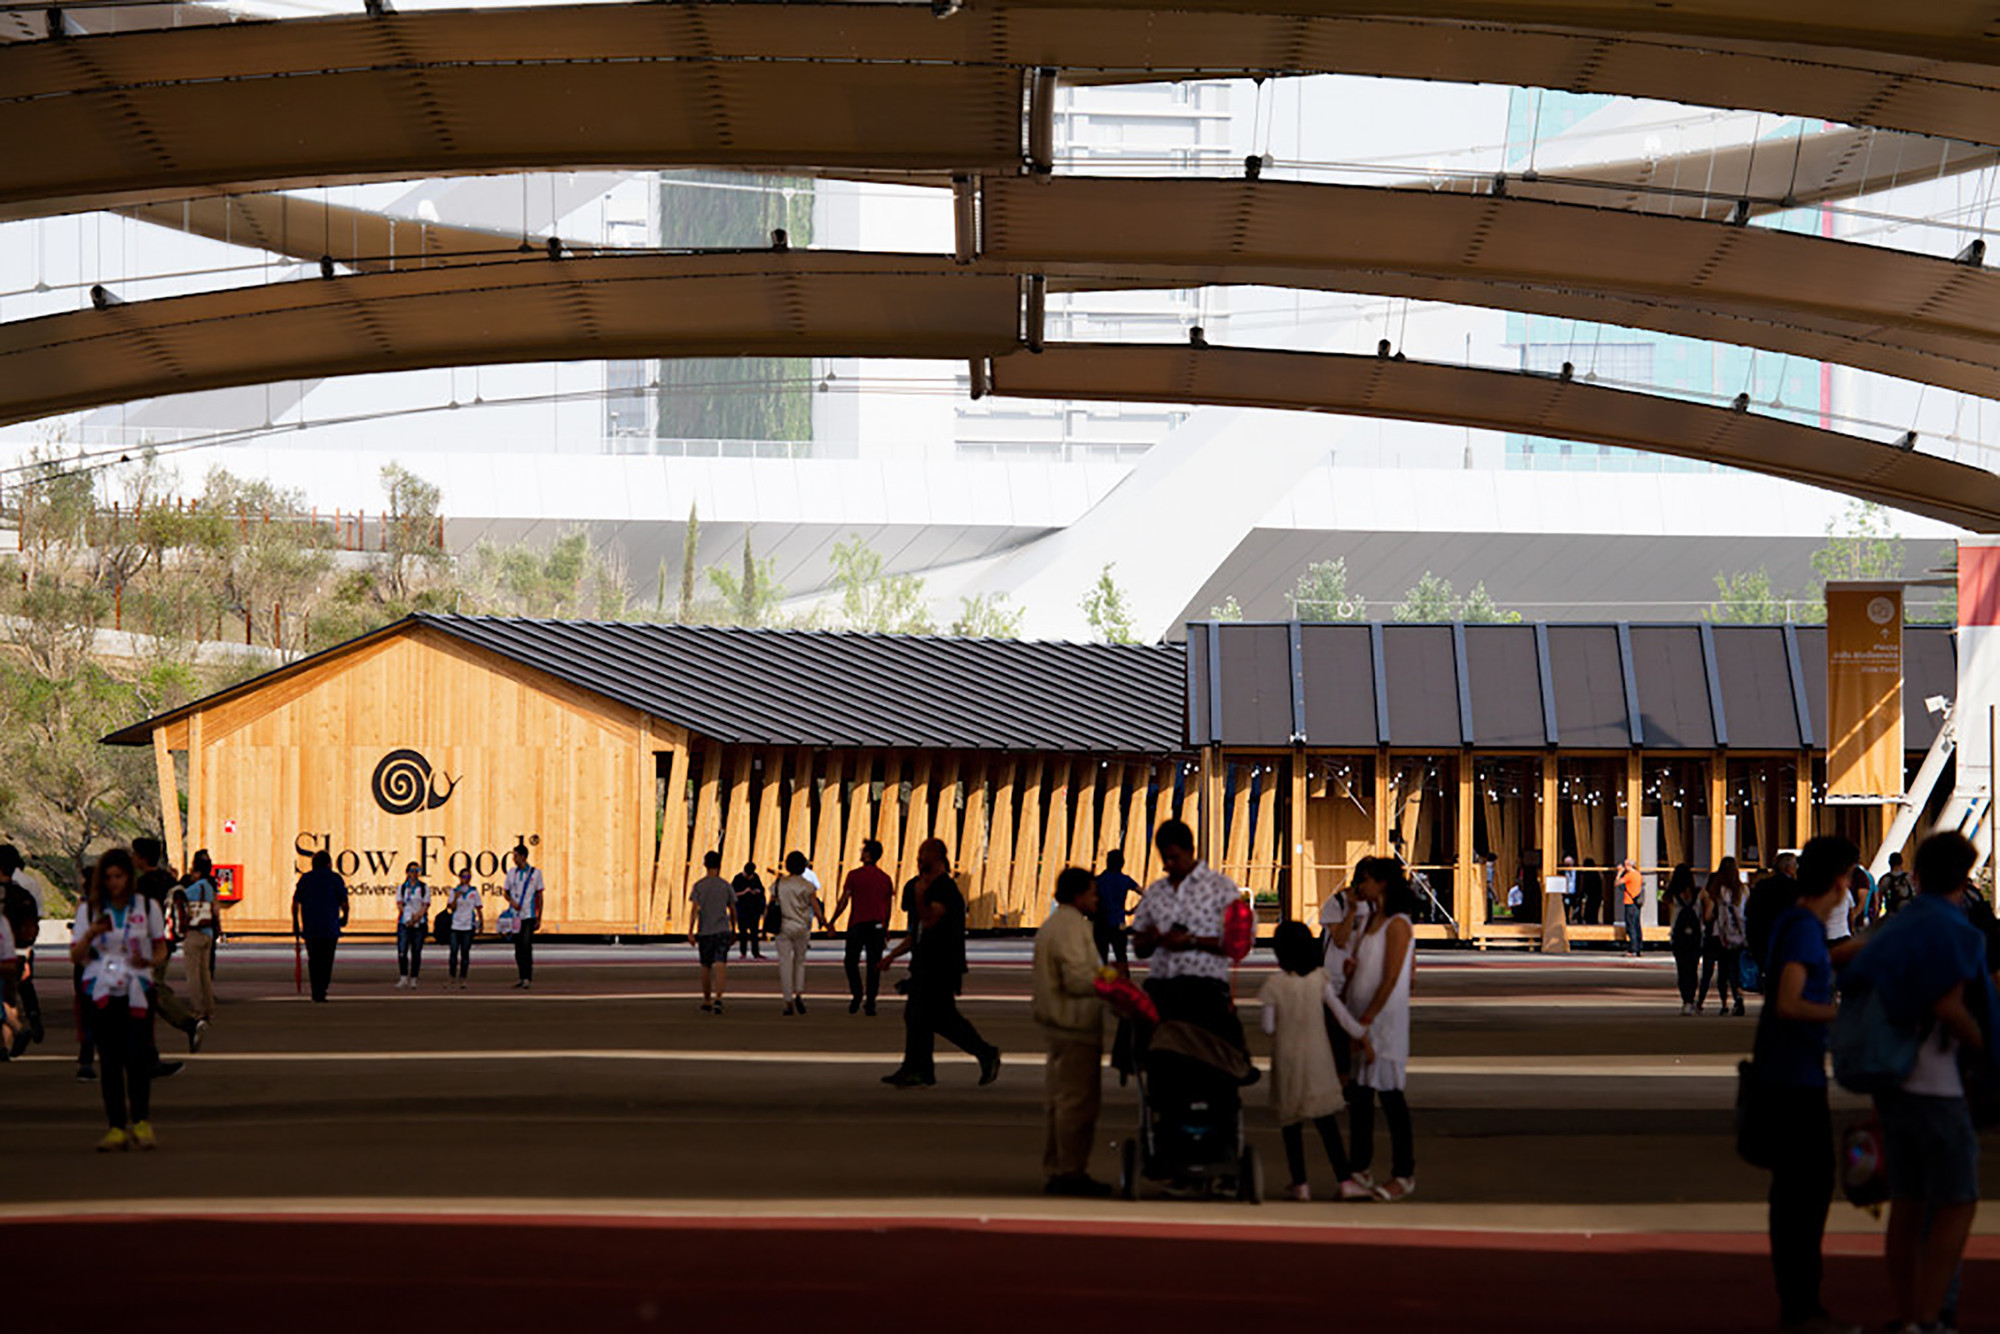 Slow Food Milan Expo Pavilion 2015